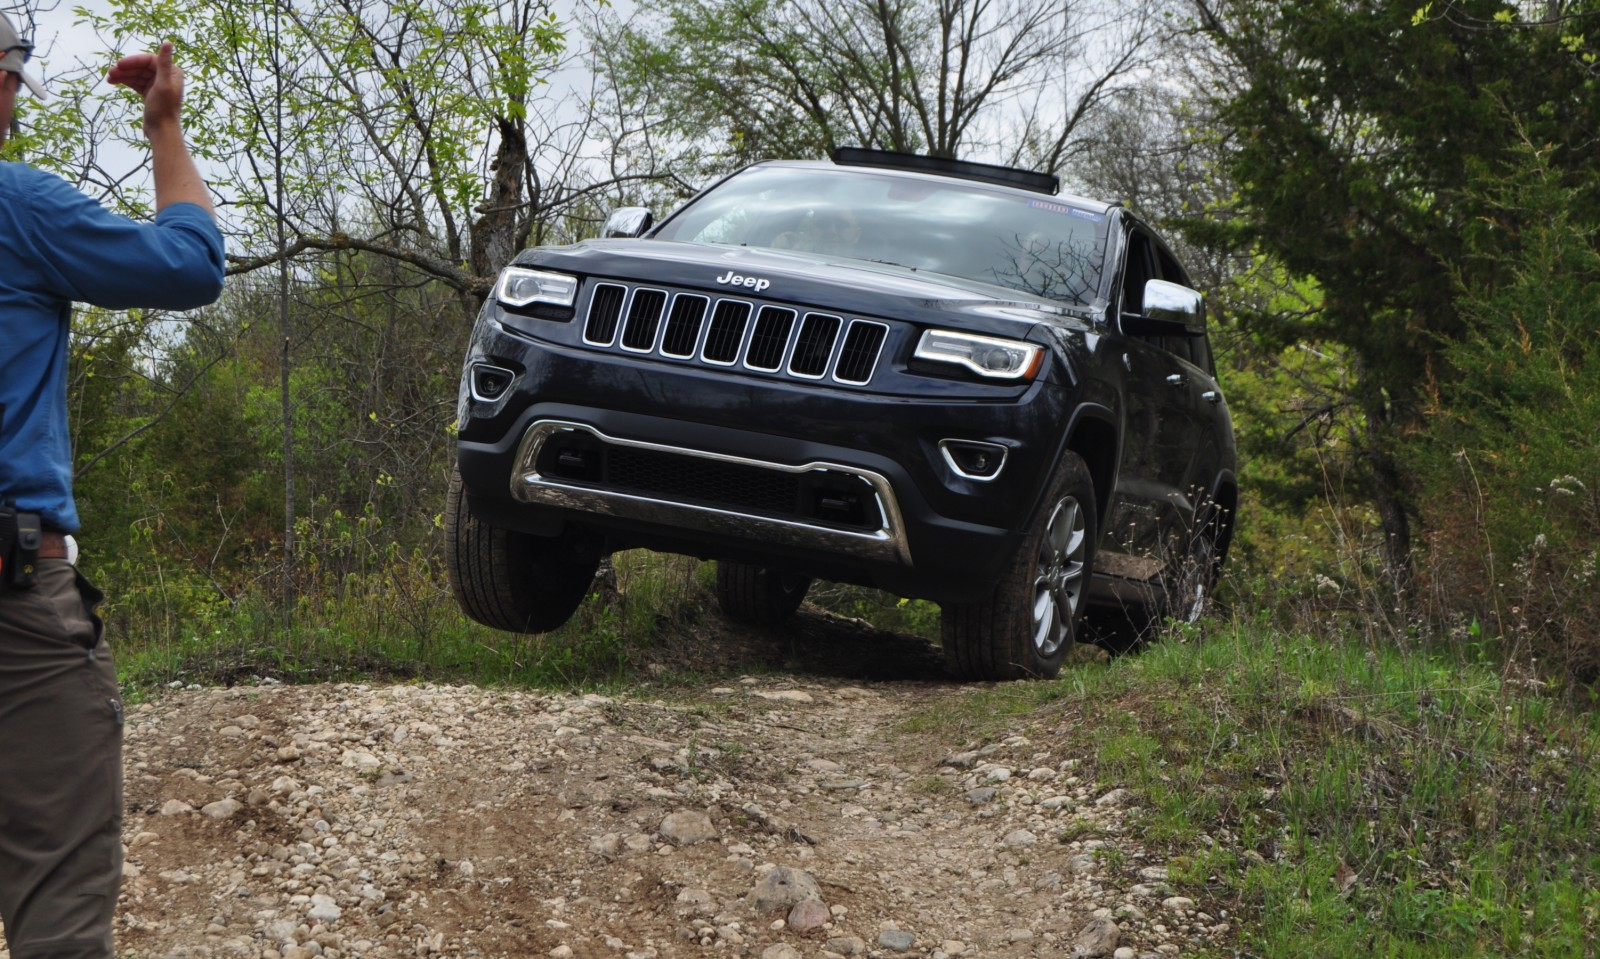 road test review 2015 jeep grand cherokee limited 4x4 with ken glassman. Black Bedroom Furniture Sets. Home Design Ideas